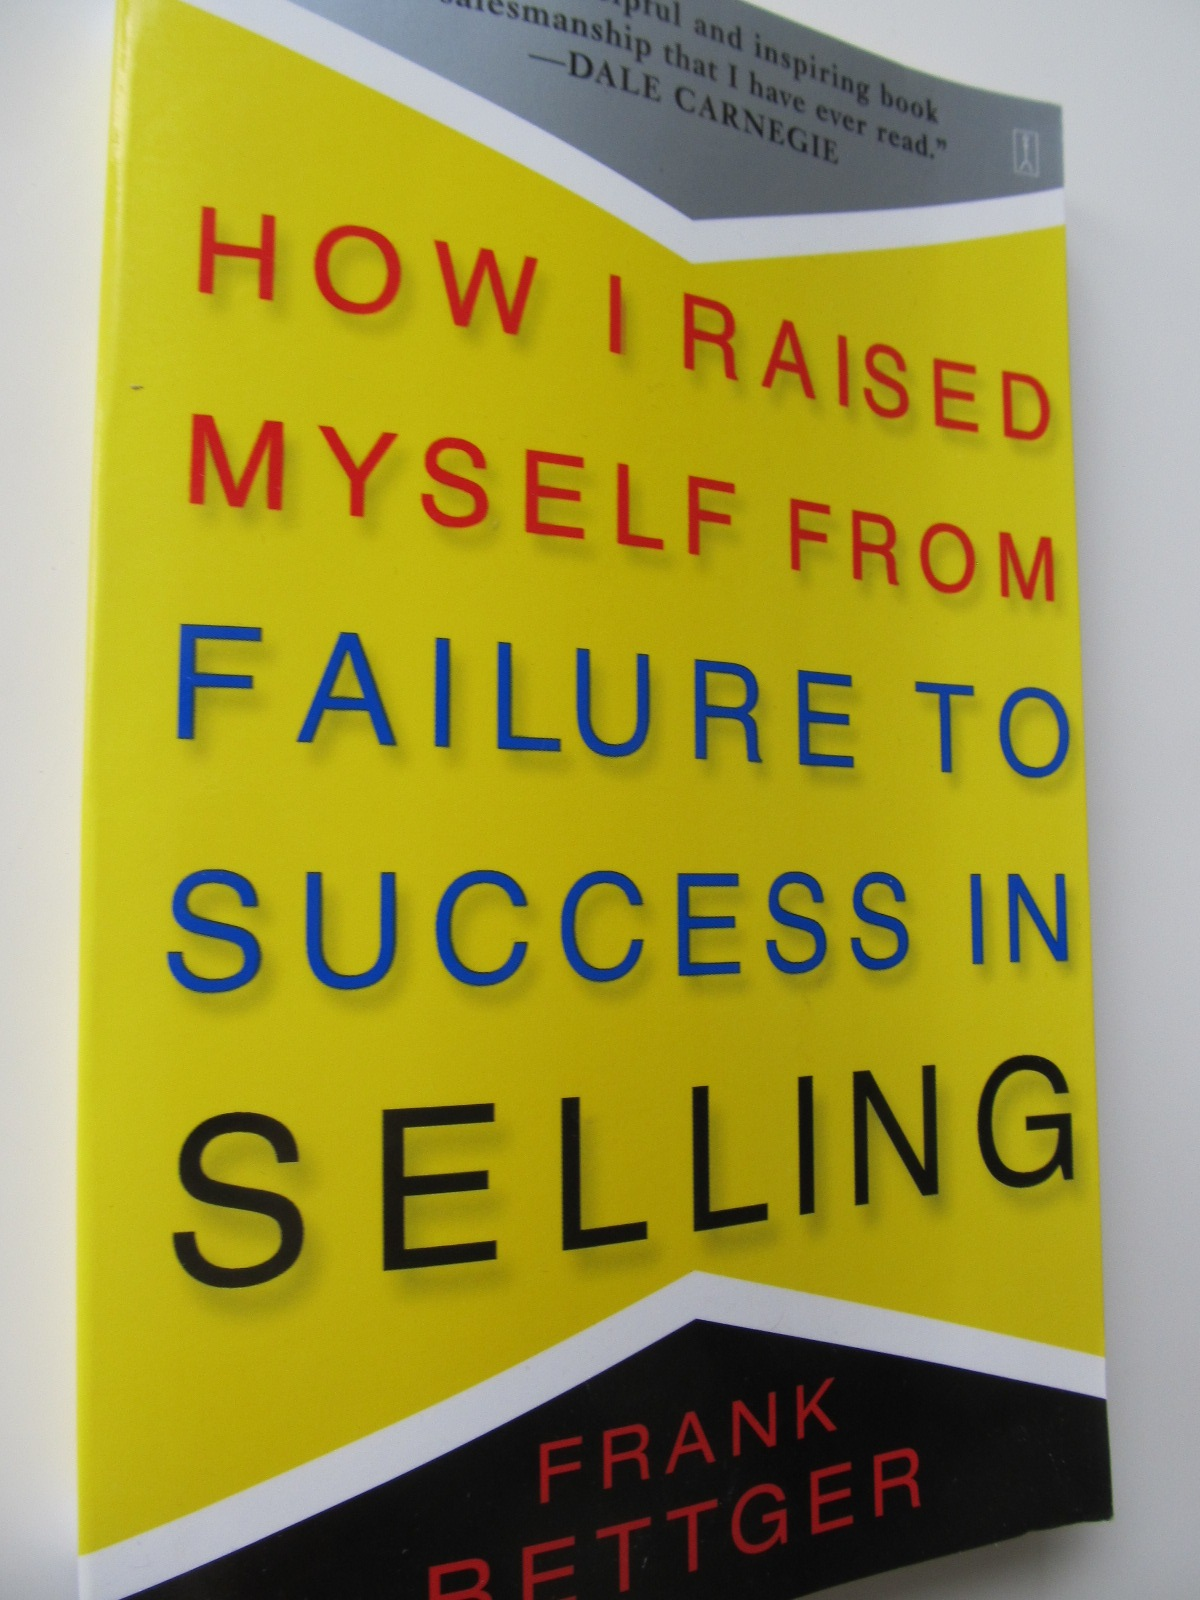 How I raised myself from failure to success in selling - Frank Bettger | Detalii carte